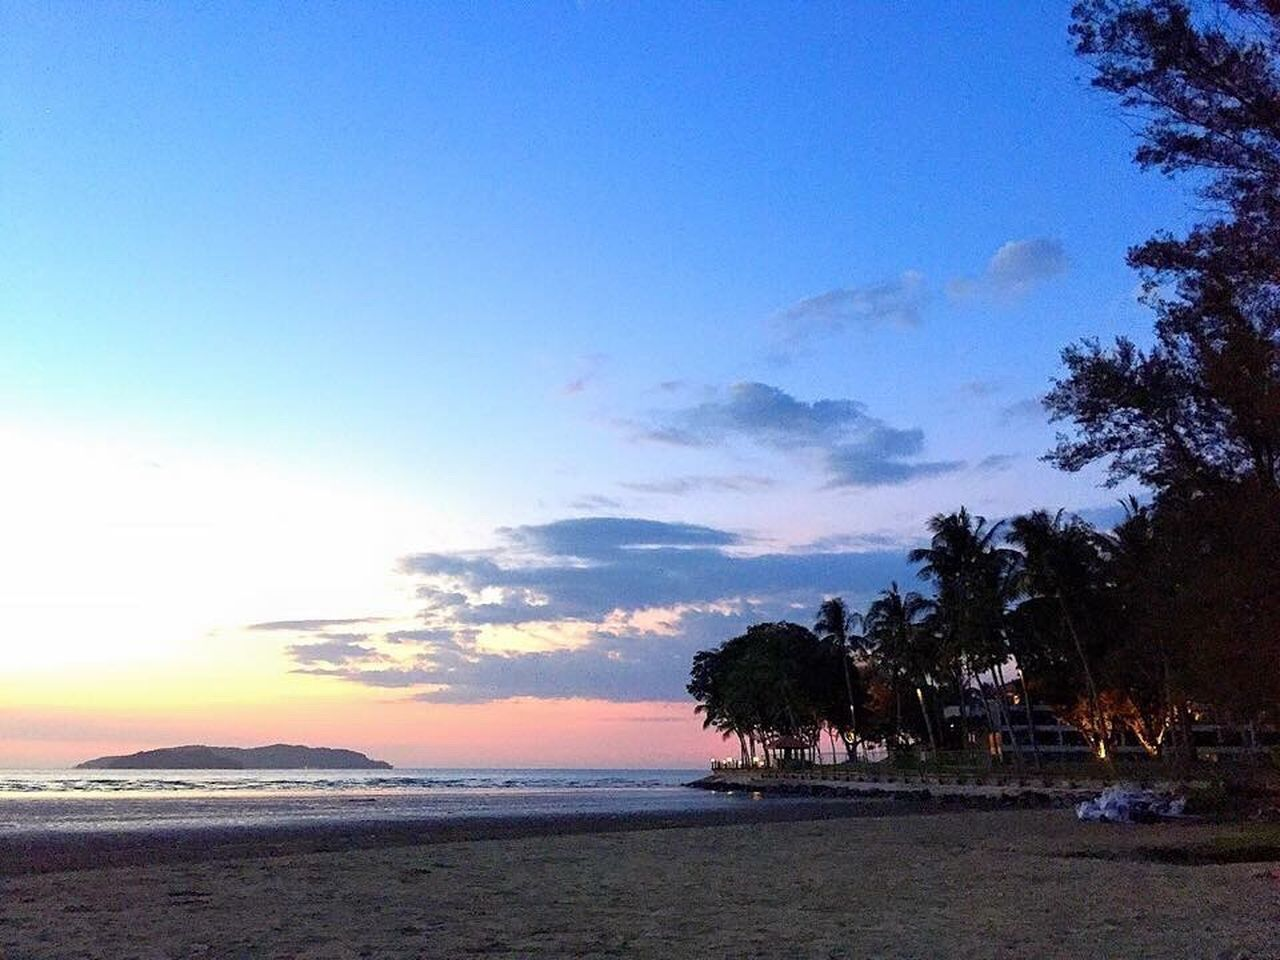 beach, sea, tree, sky, water, sunset, beauty in nature, tranquility, nature, scenics, tranquil scene, horizon over water, no people, outdoors, blue, palm tree, day